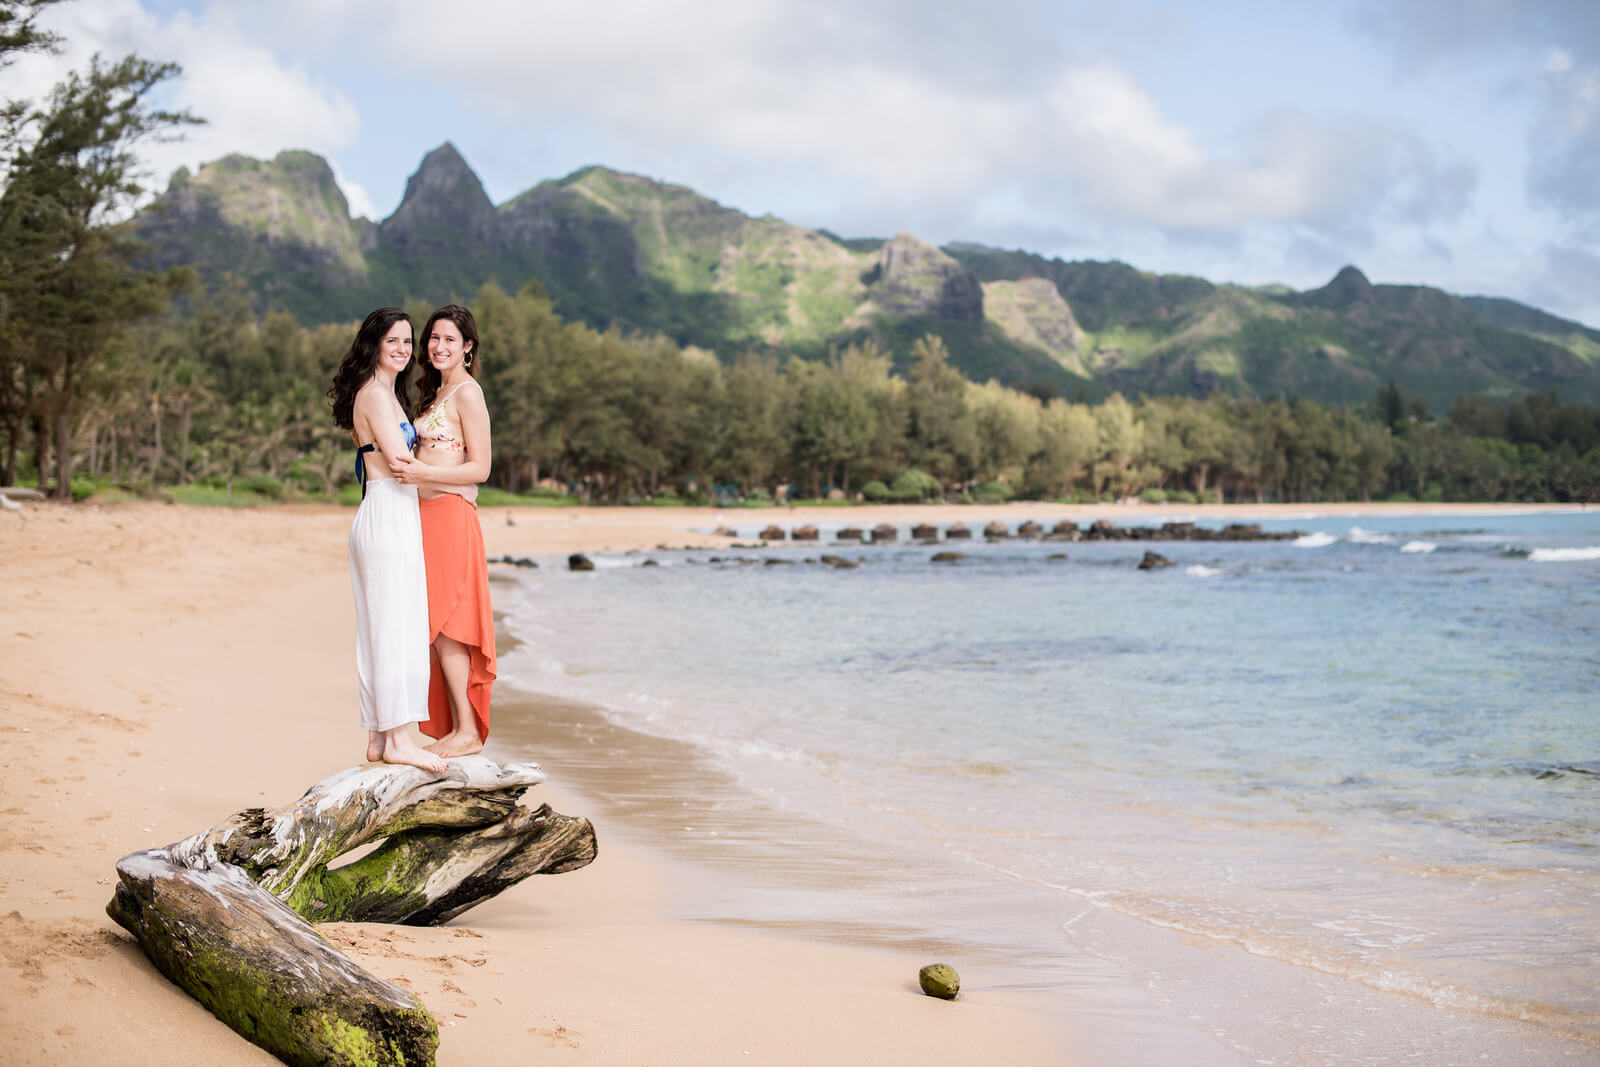 3 Unique Ways to Document Your Next Trip to Hawaii